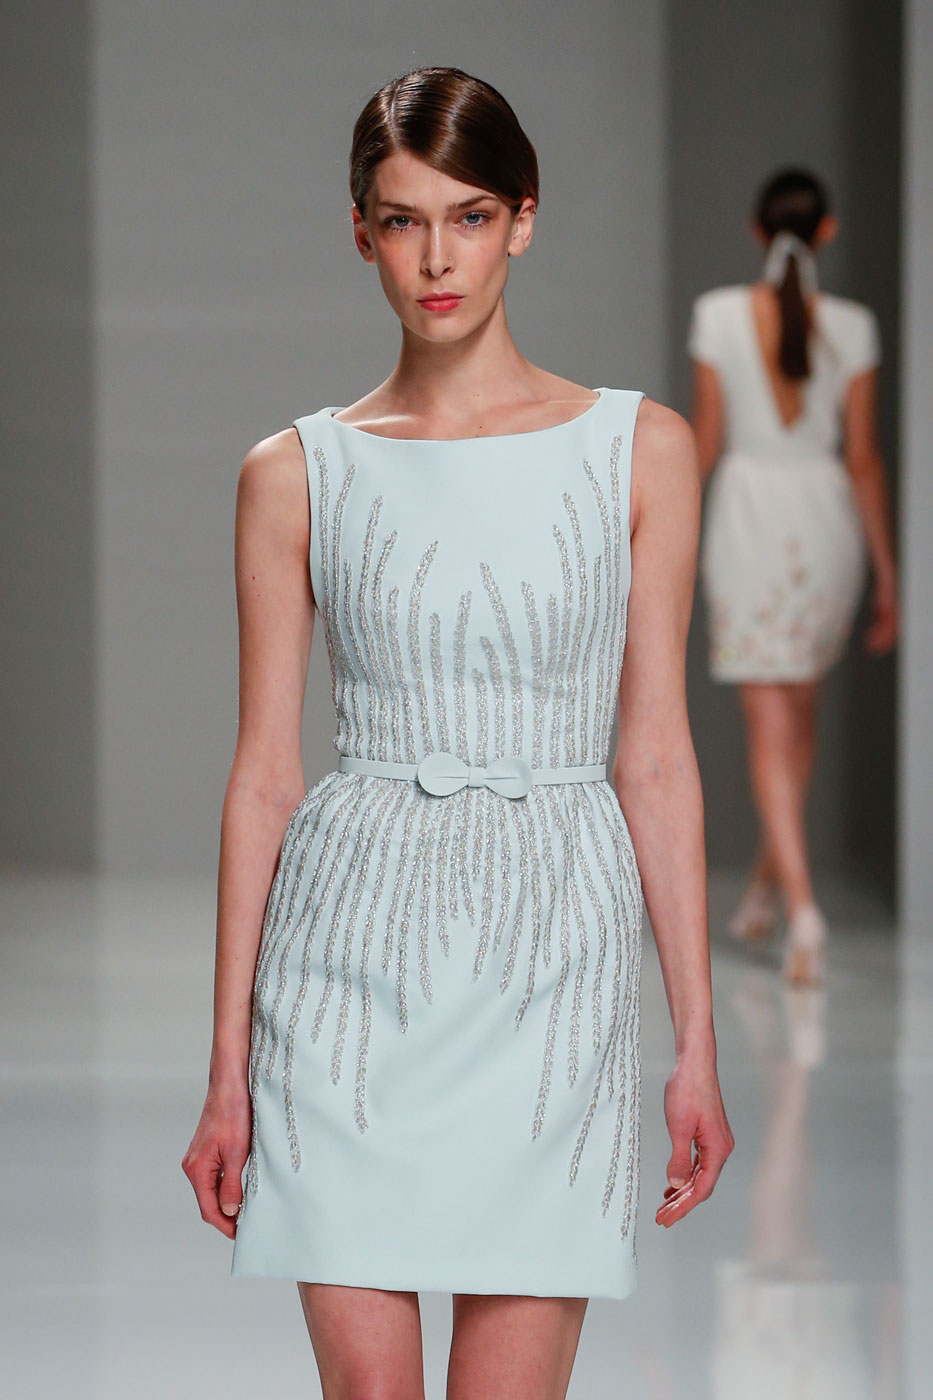 Georges-Hobeika-fashion-runway-show-haute-couture-paris-spring-2015-the-impression-08